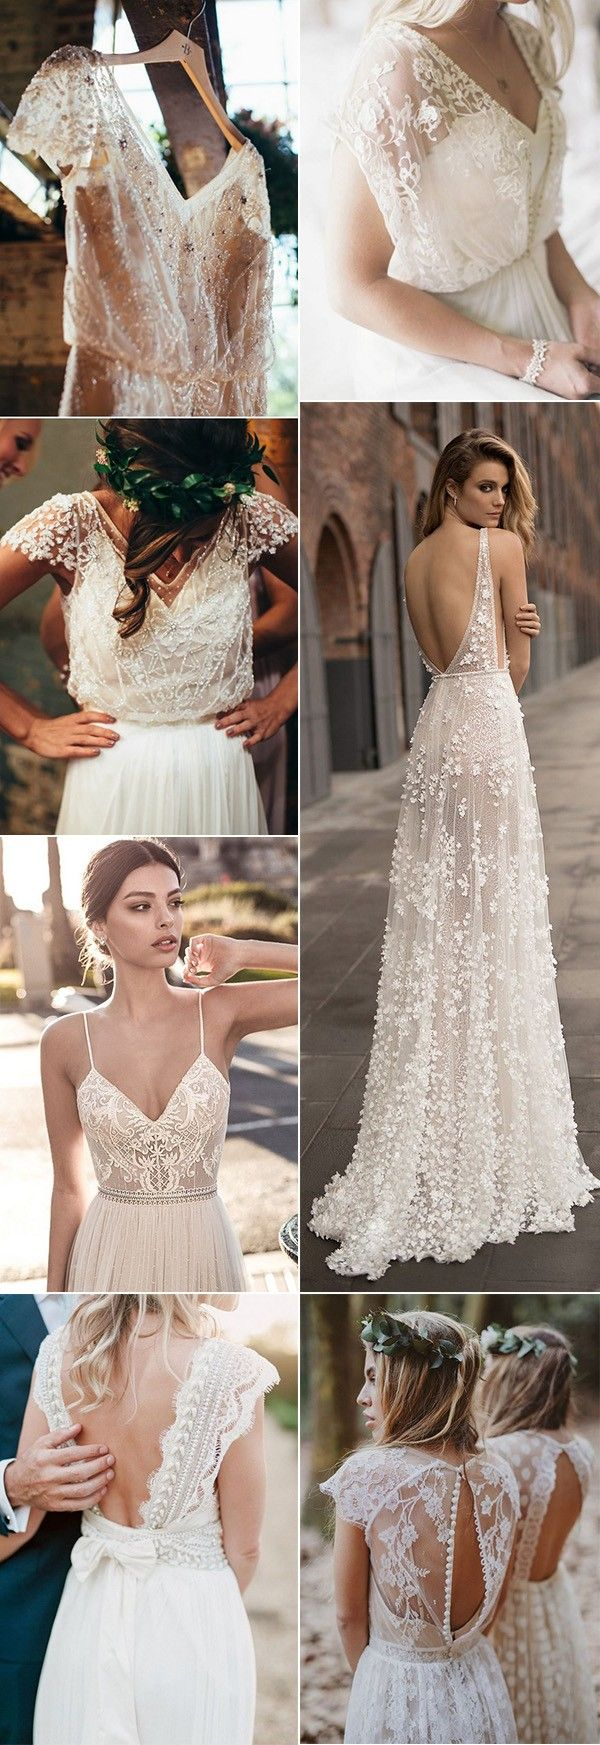 Forum on this topic: Top Boho Wedding Dress Ideas For You, top-boho-wedding-dress-ideas-for-you/